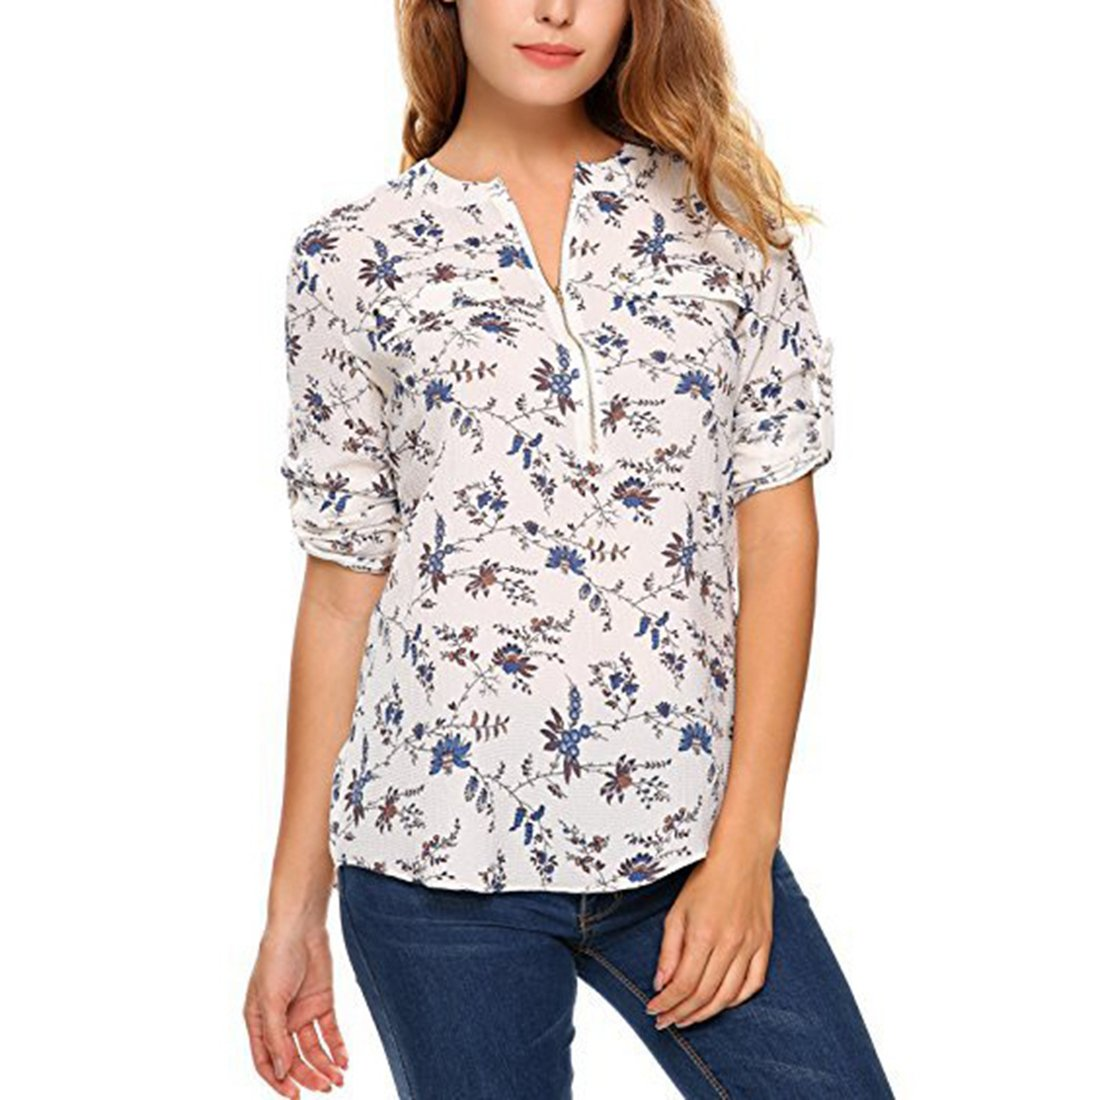 Shinekoo Women Casual Long Sleeve Chiffon Blouse Tops Shirt with Zipper:  Amazon.co.uk: Clothing